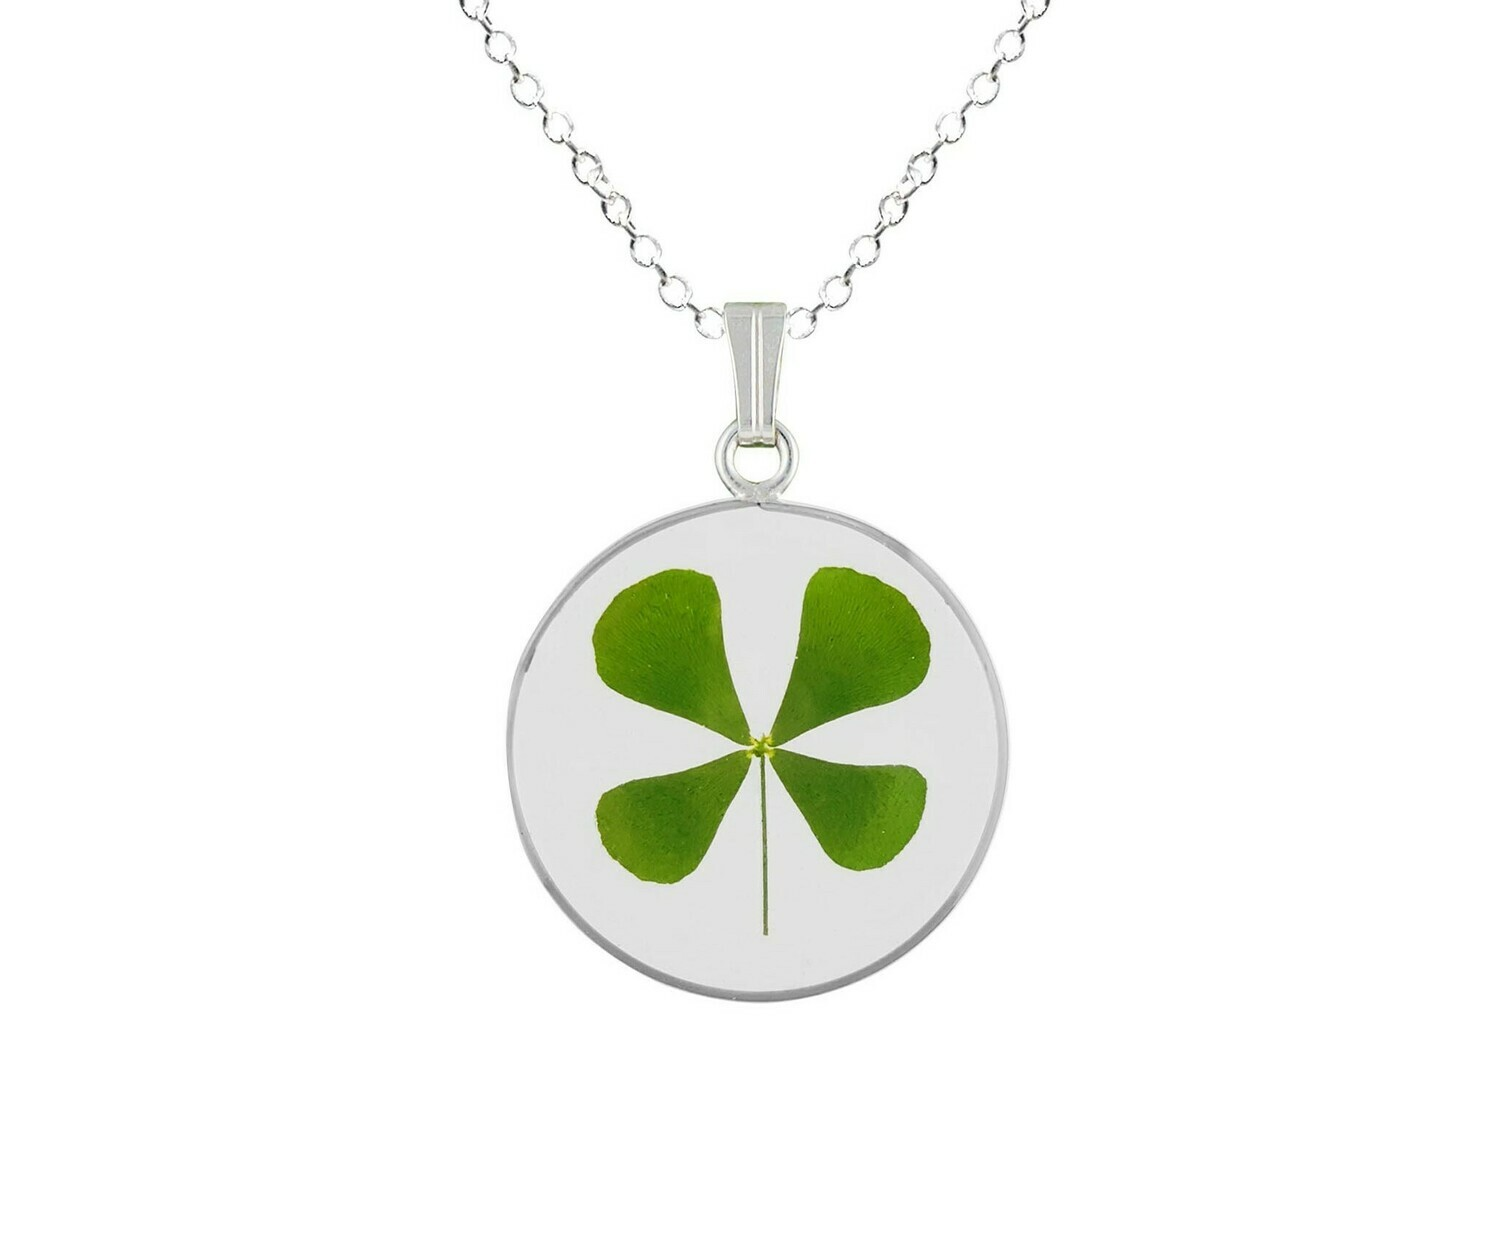 Clover Necklace, Medium Circle, Transparent